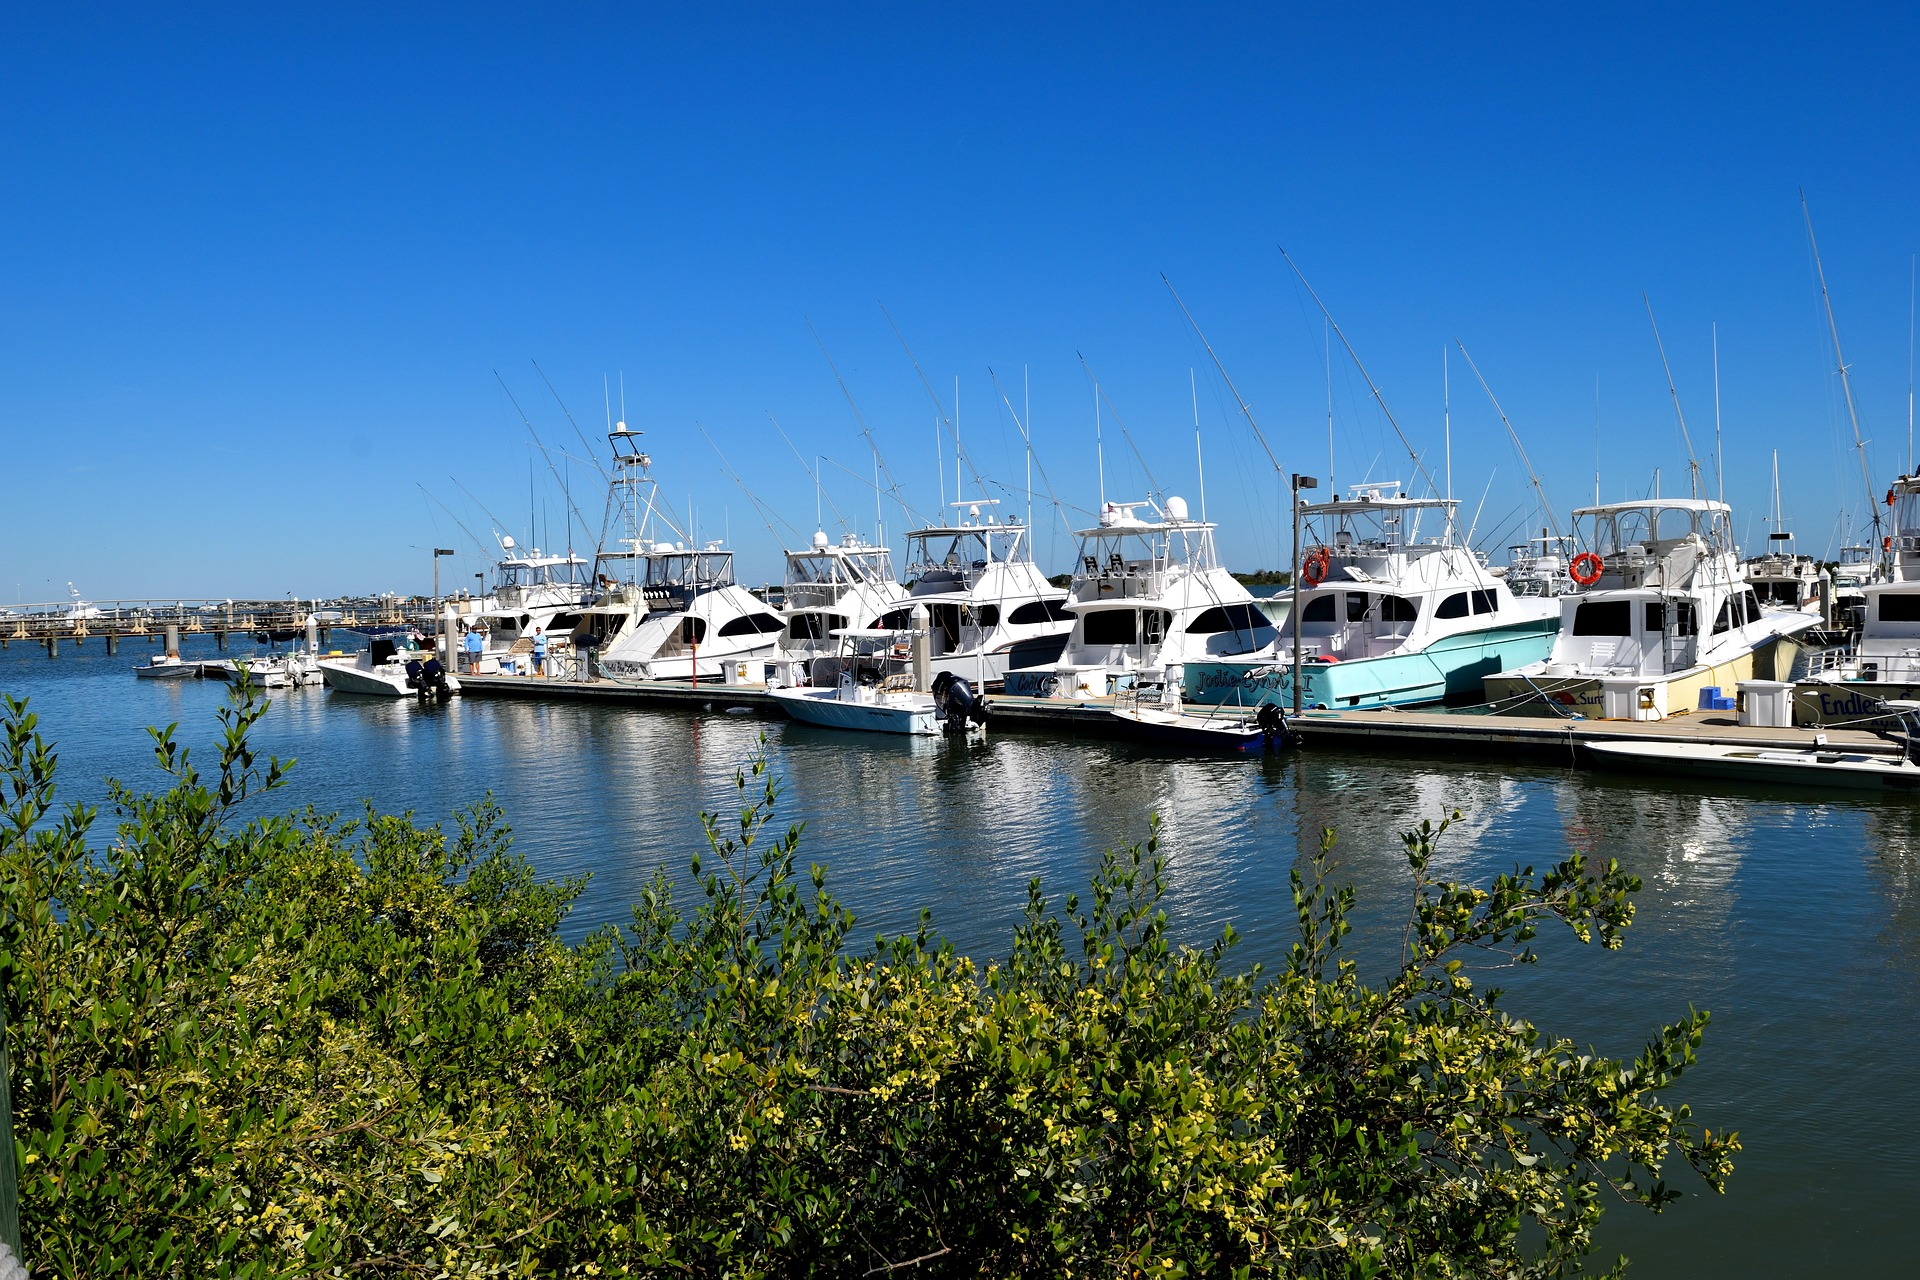 Florida Marina lined with boats